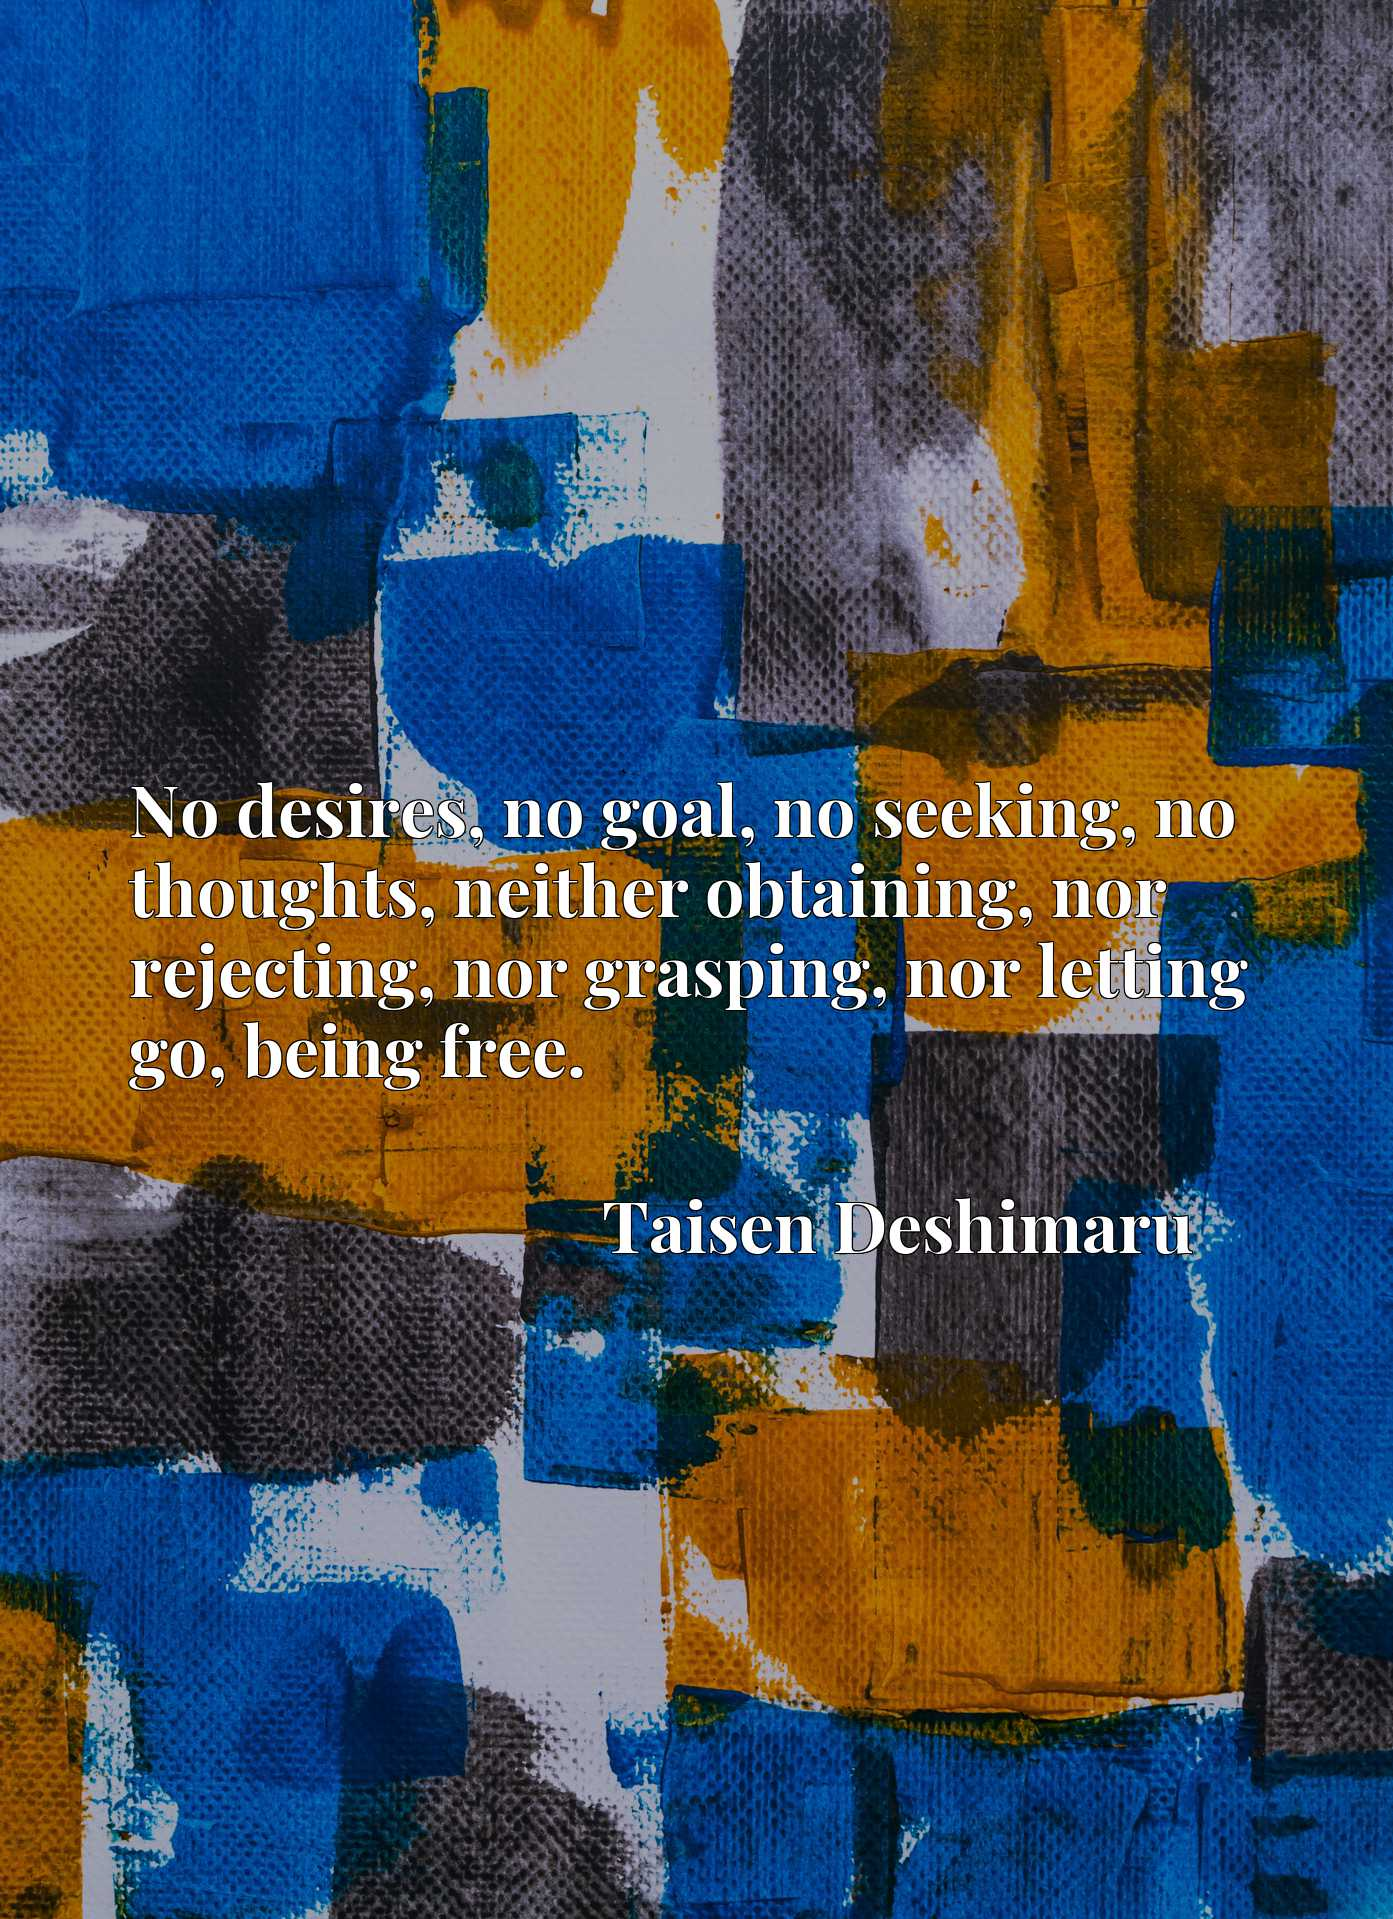 No desires, no goal, no seeking, no thoughts, neither obtaining, nor rejecting, nor grasping, nor letting go, being free.